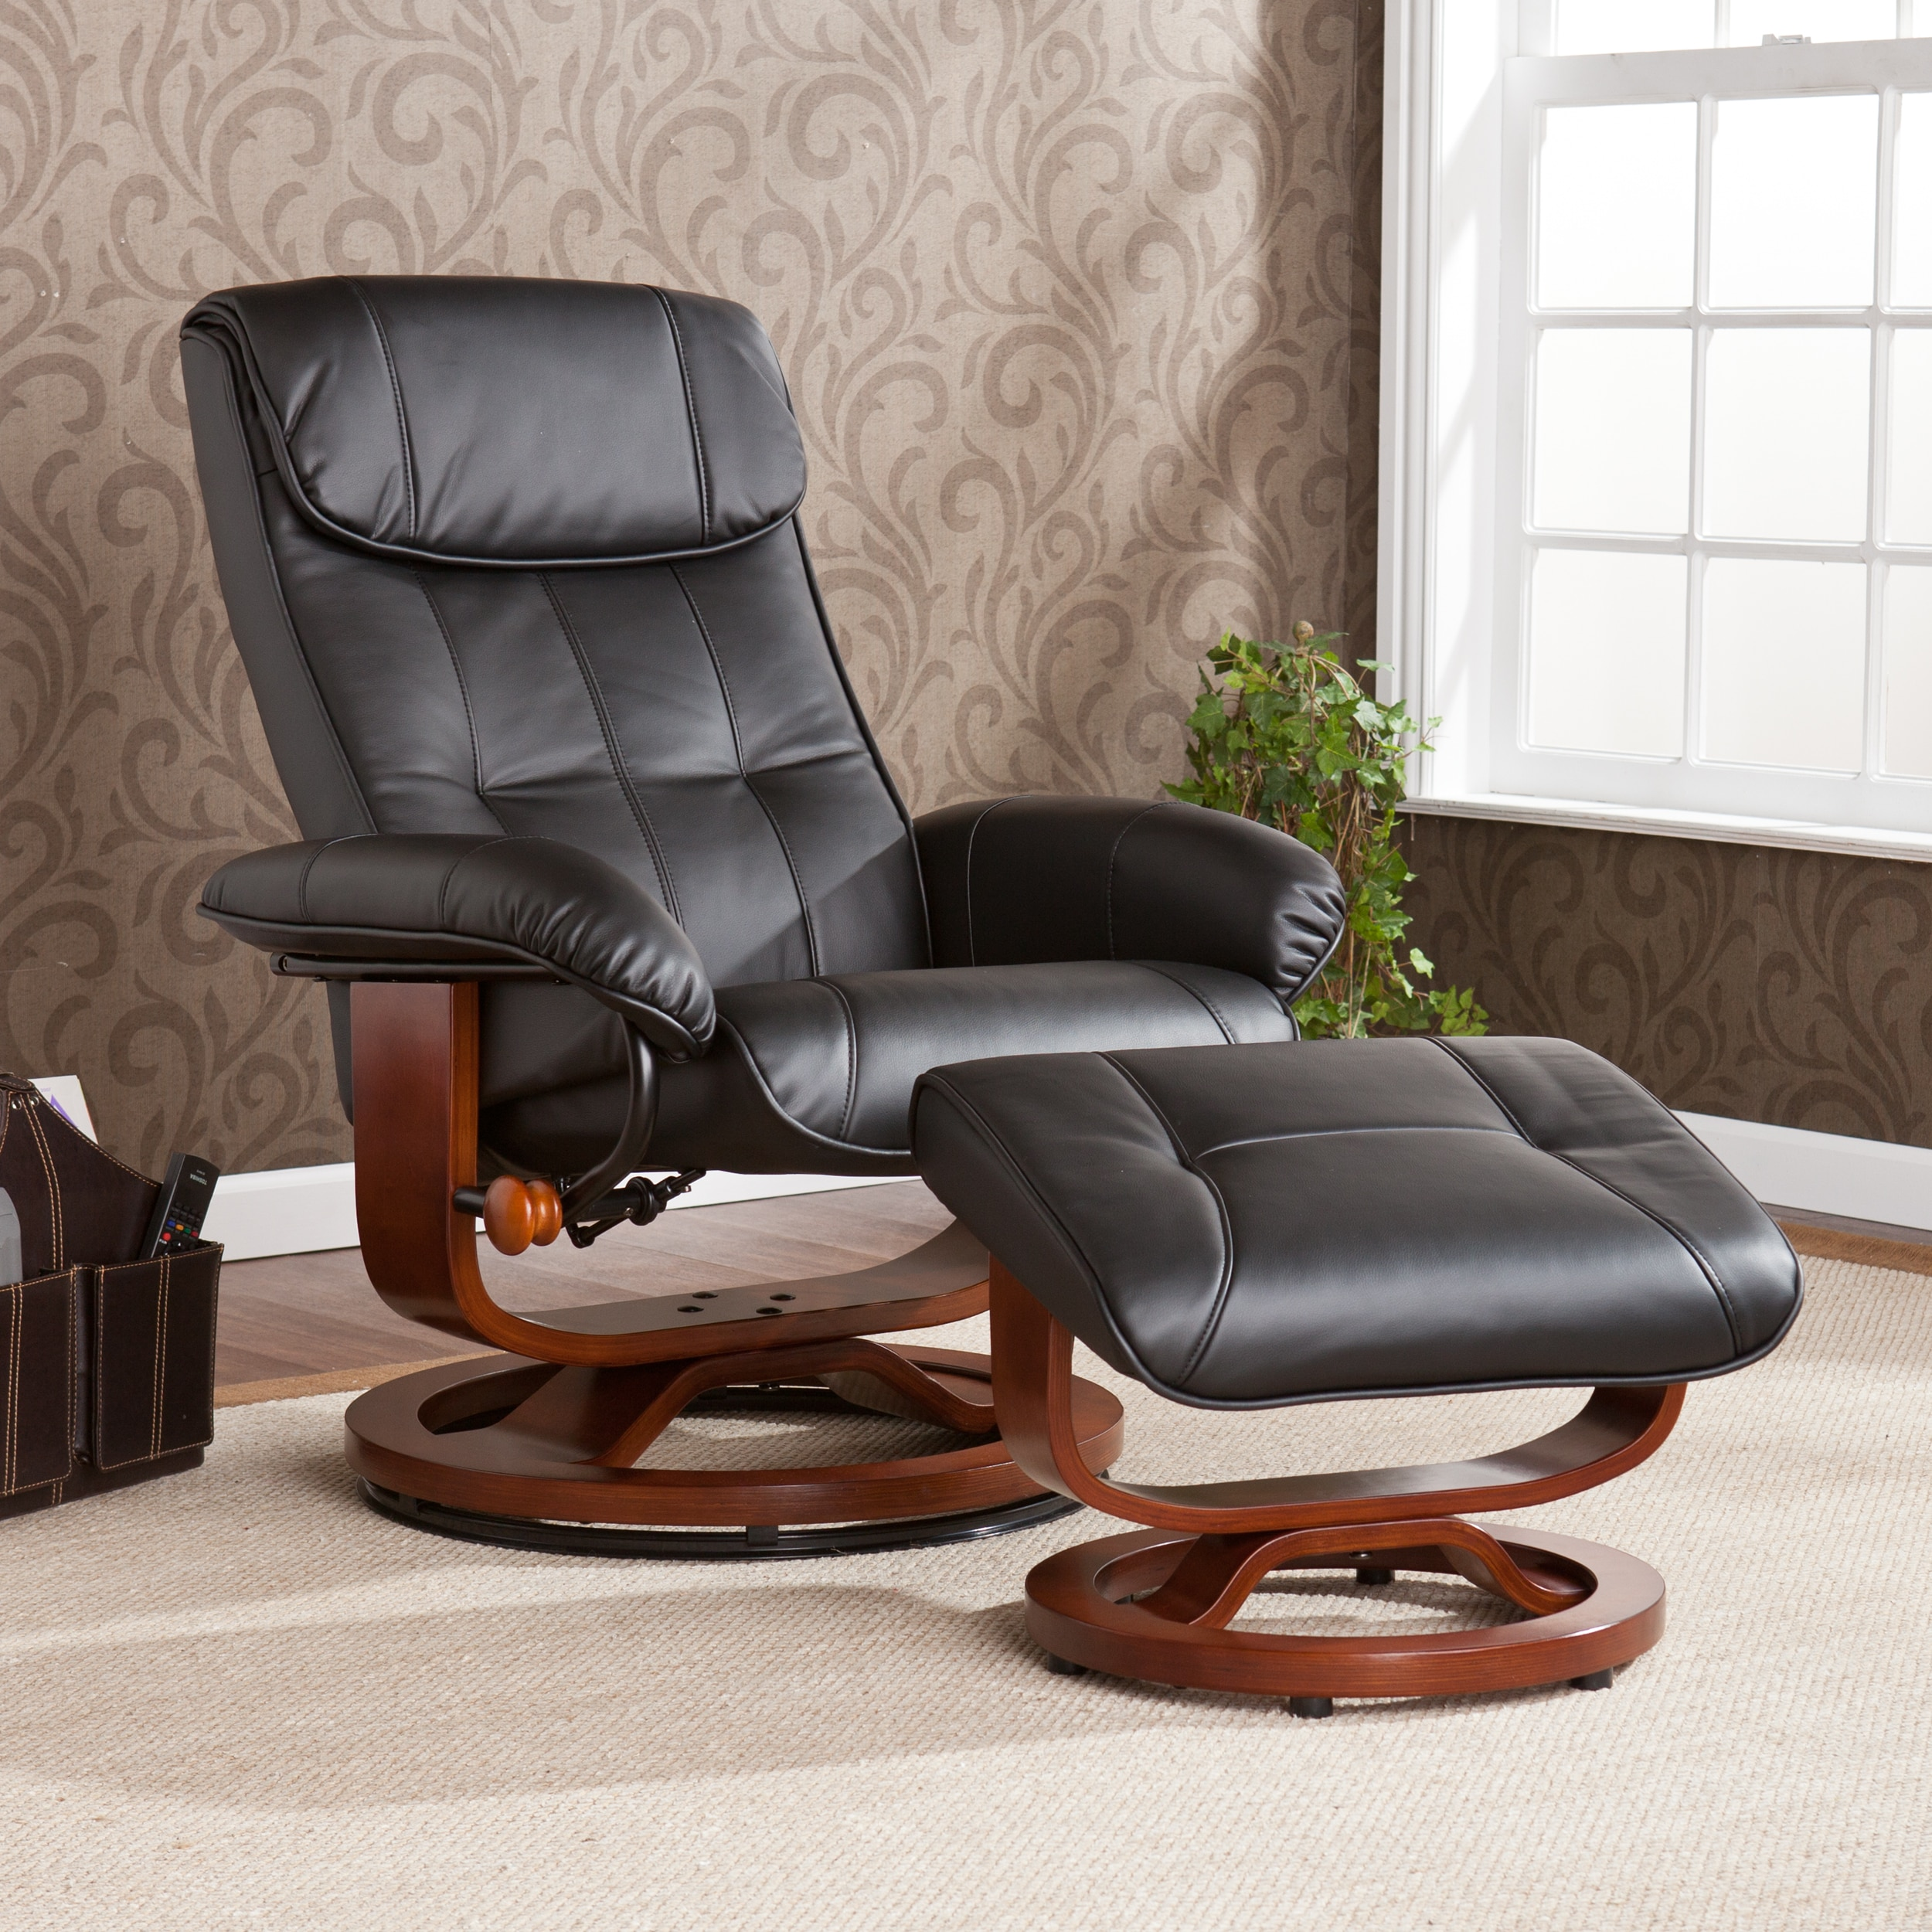 Upton Home Viridian Black Recliner/ Ottoman Set at Sears.com